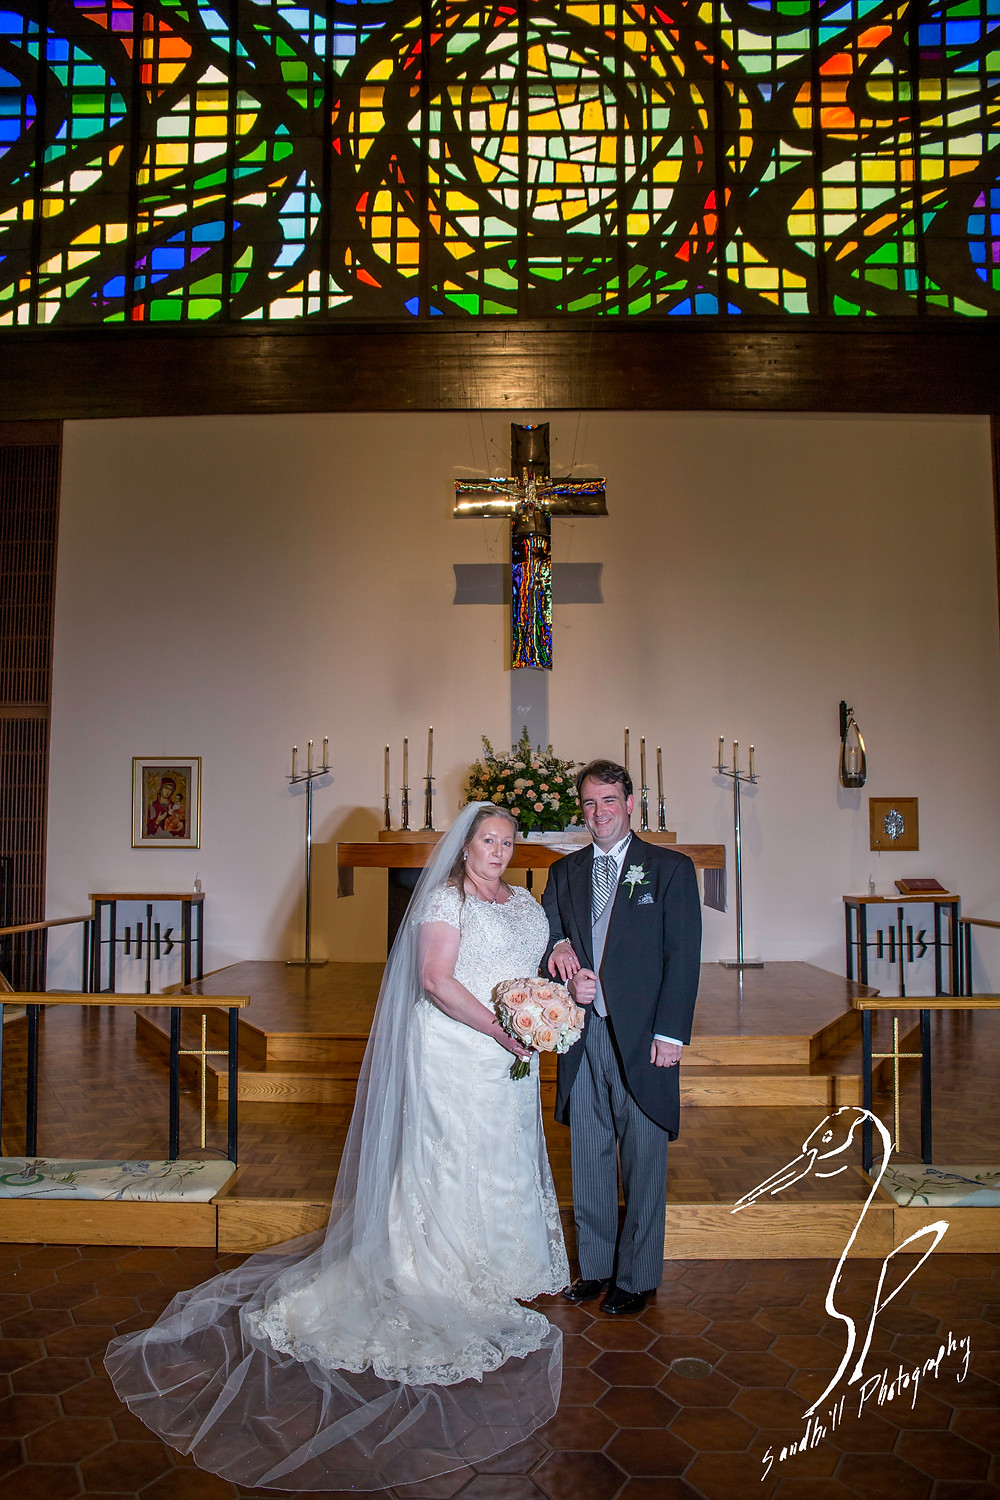 Rainy Day Wedding Photography Sarasota, Wedding Portrait with the Bride and Groom at the alter in St. Boniface Episcopal Church, Siesta Key